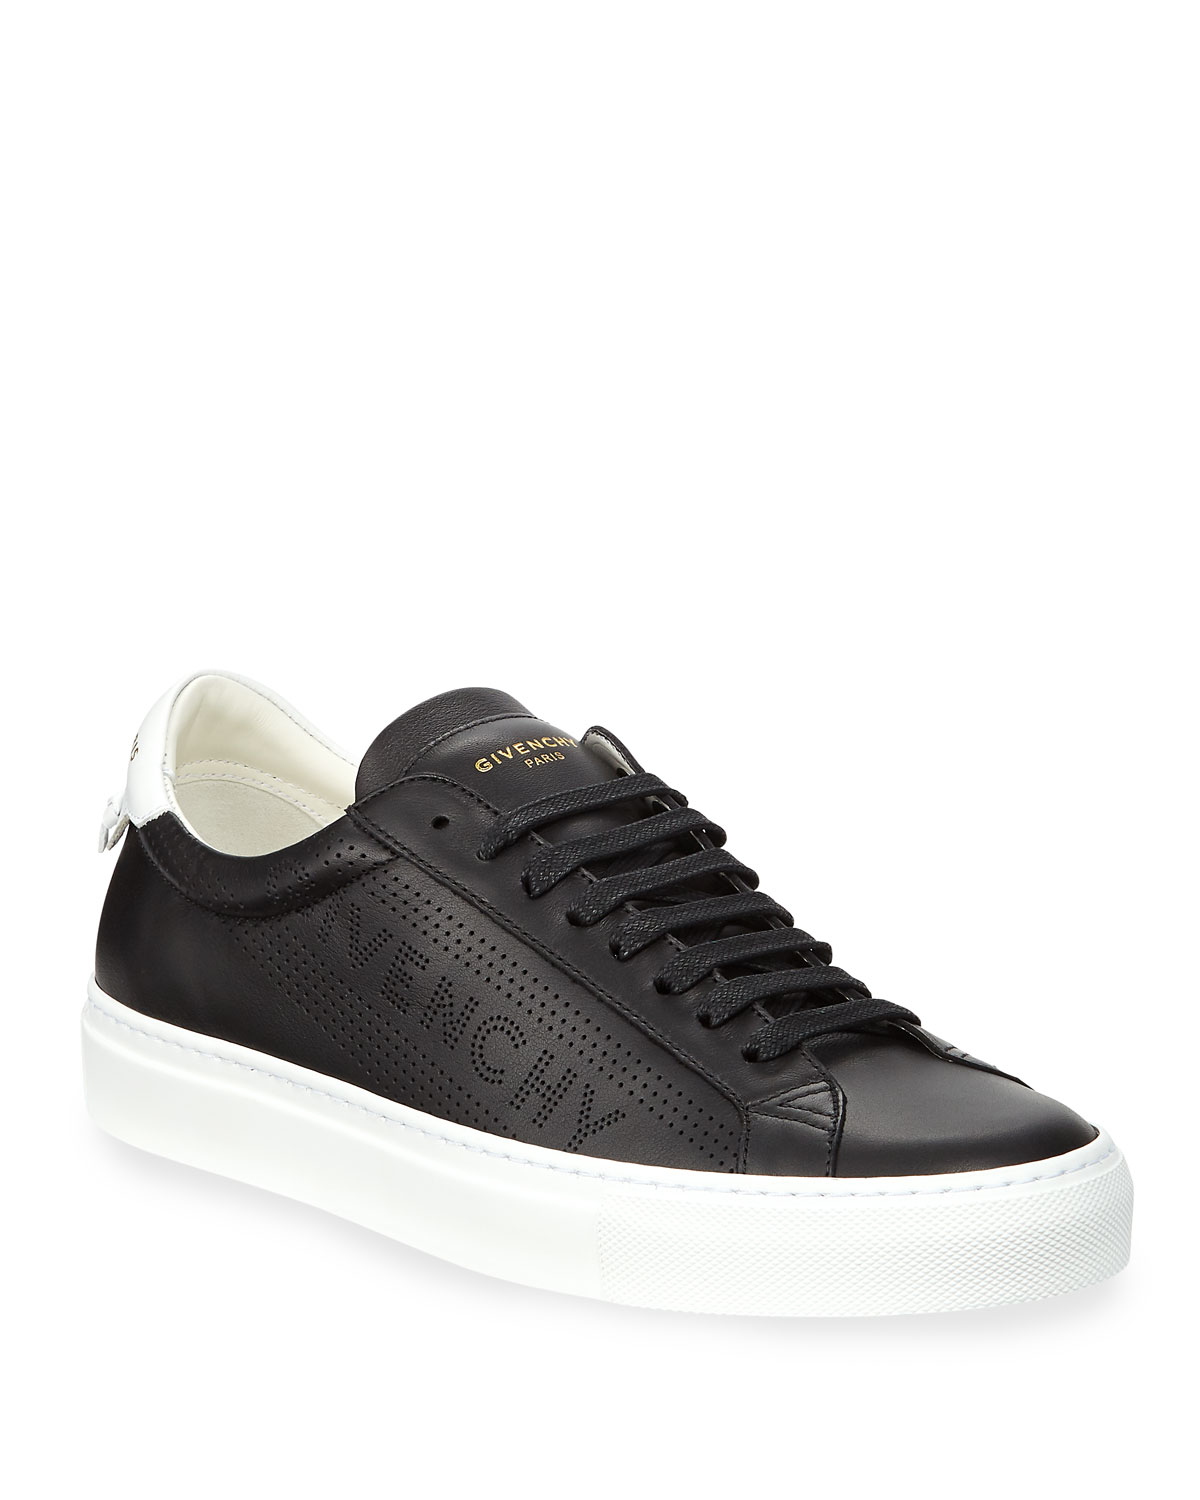 c46049b4aaa Givenchy Men s Urban Street Leather Low-Top Sneakers